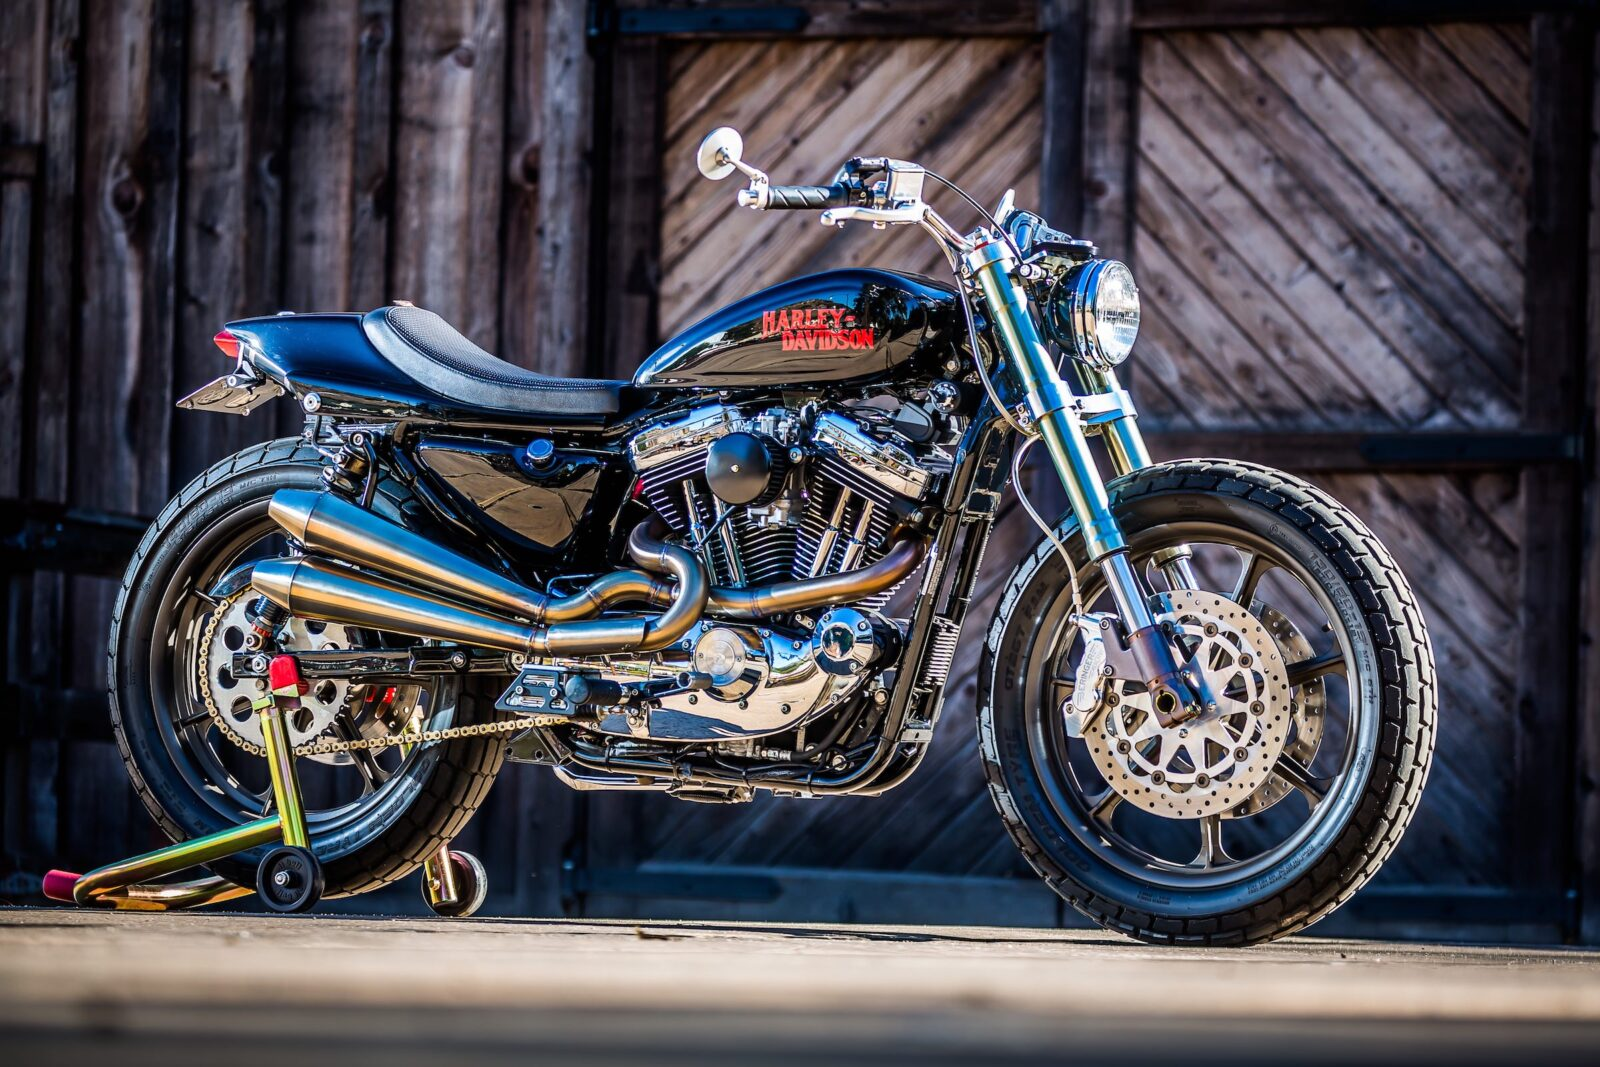 harley davidson tracker motorbike 4 1600x1067 - Mule Motorcycles - The Midnight Express Harley Tracker